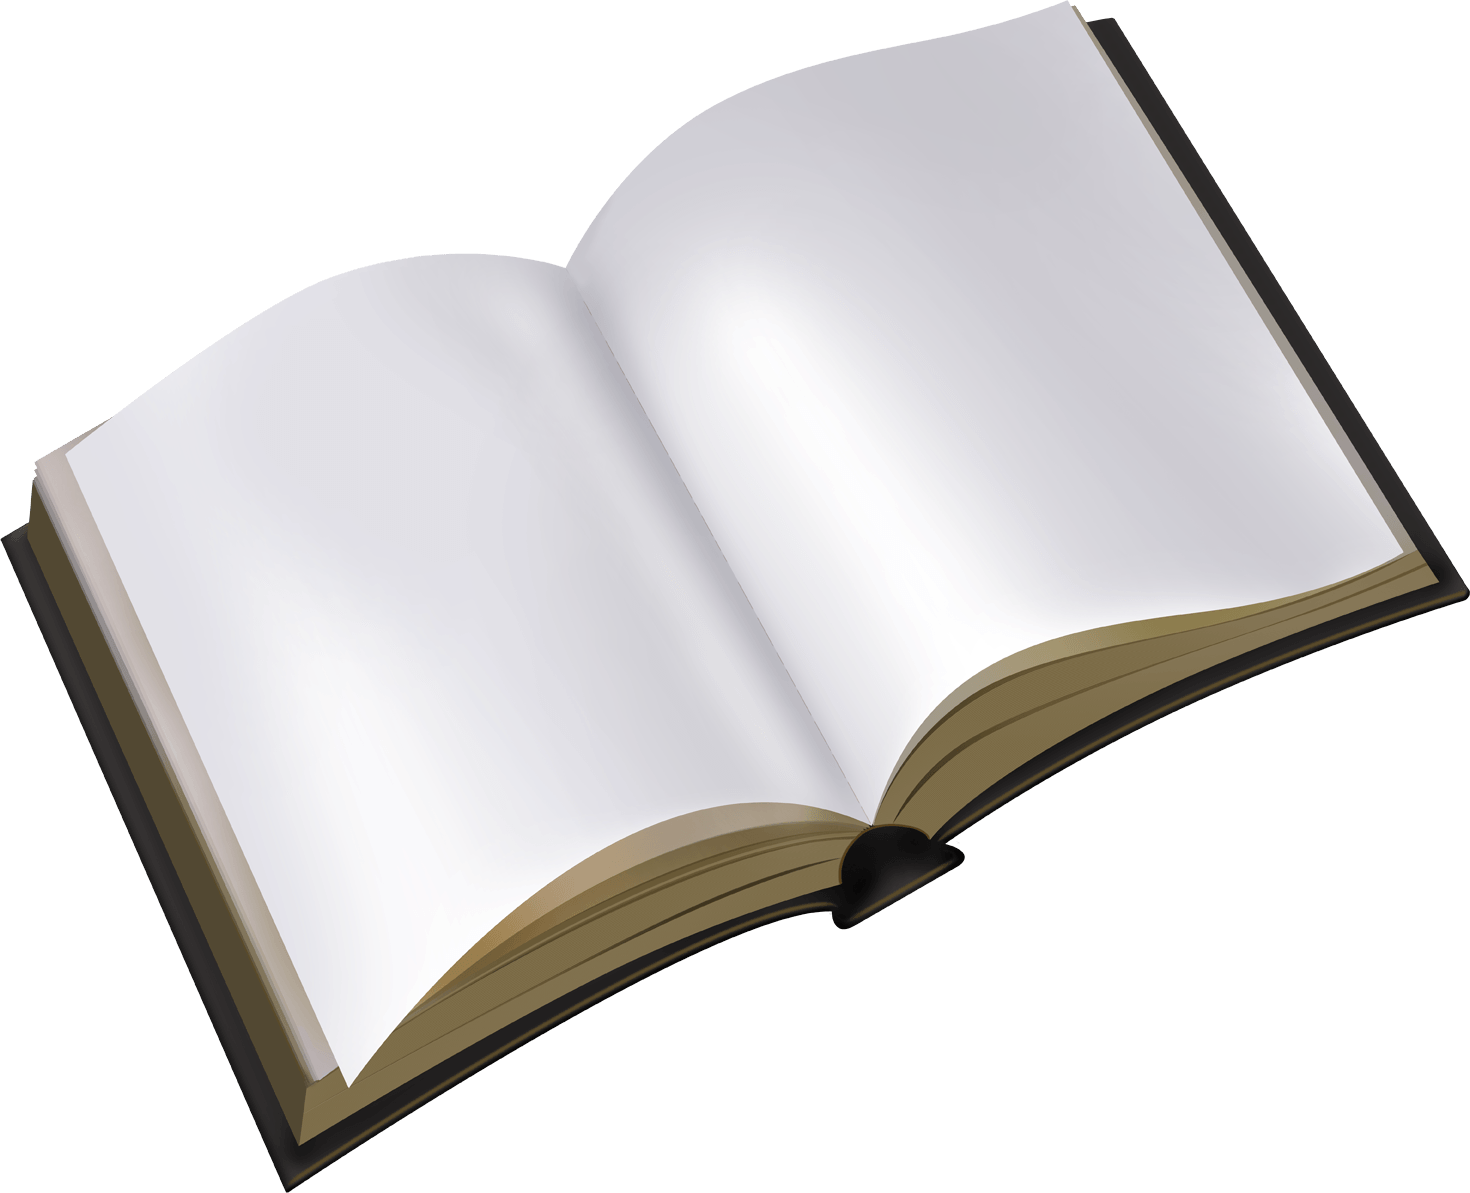 Book Old Open Transparent PNG